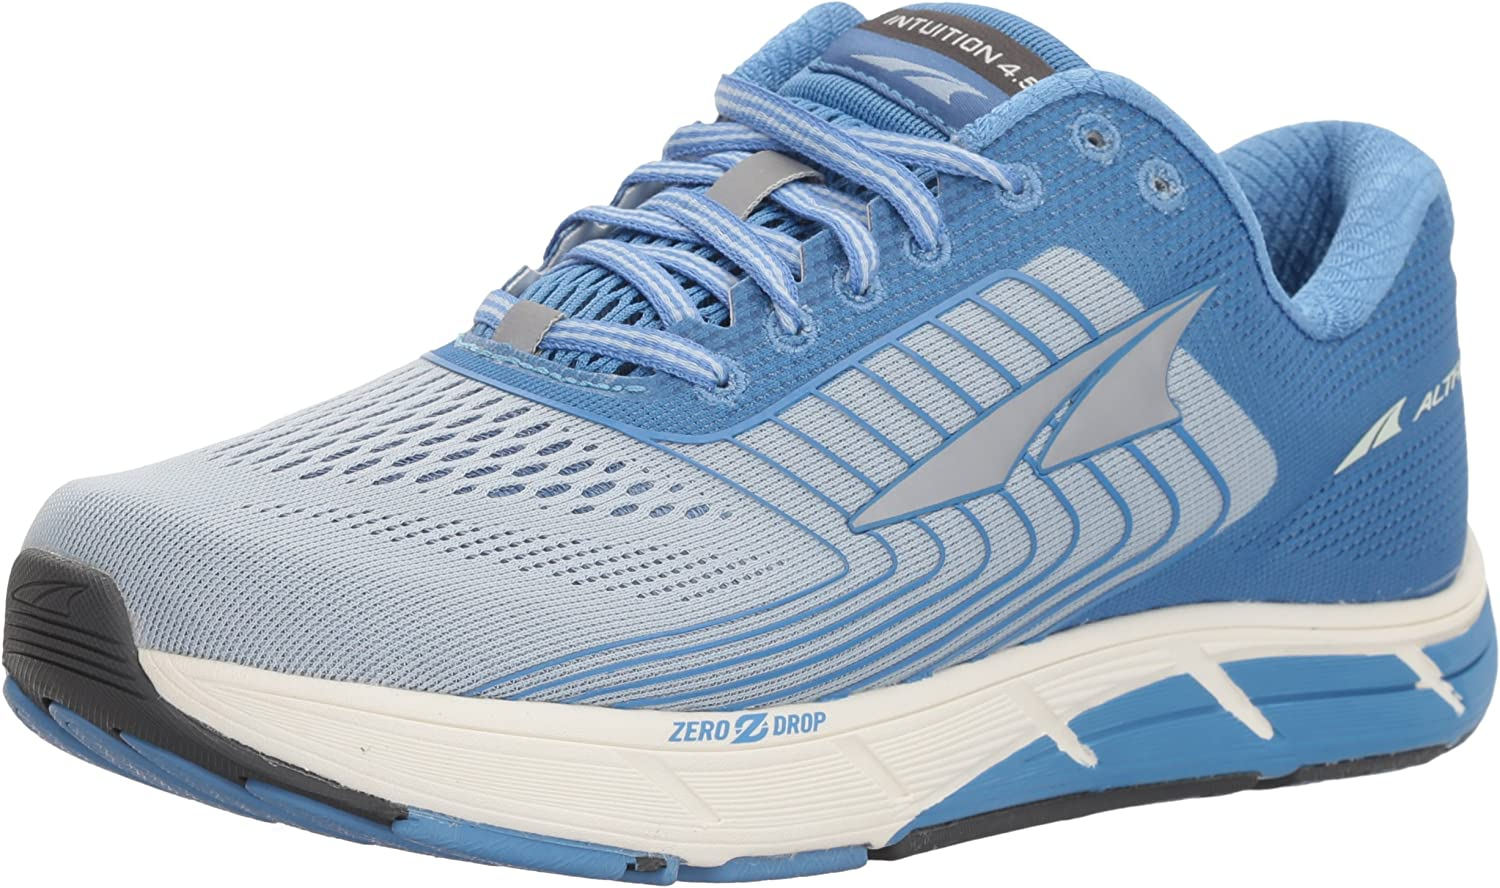 Altra Womens Intuition 4.5 bluee Size  7 US   7 AU